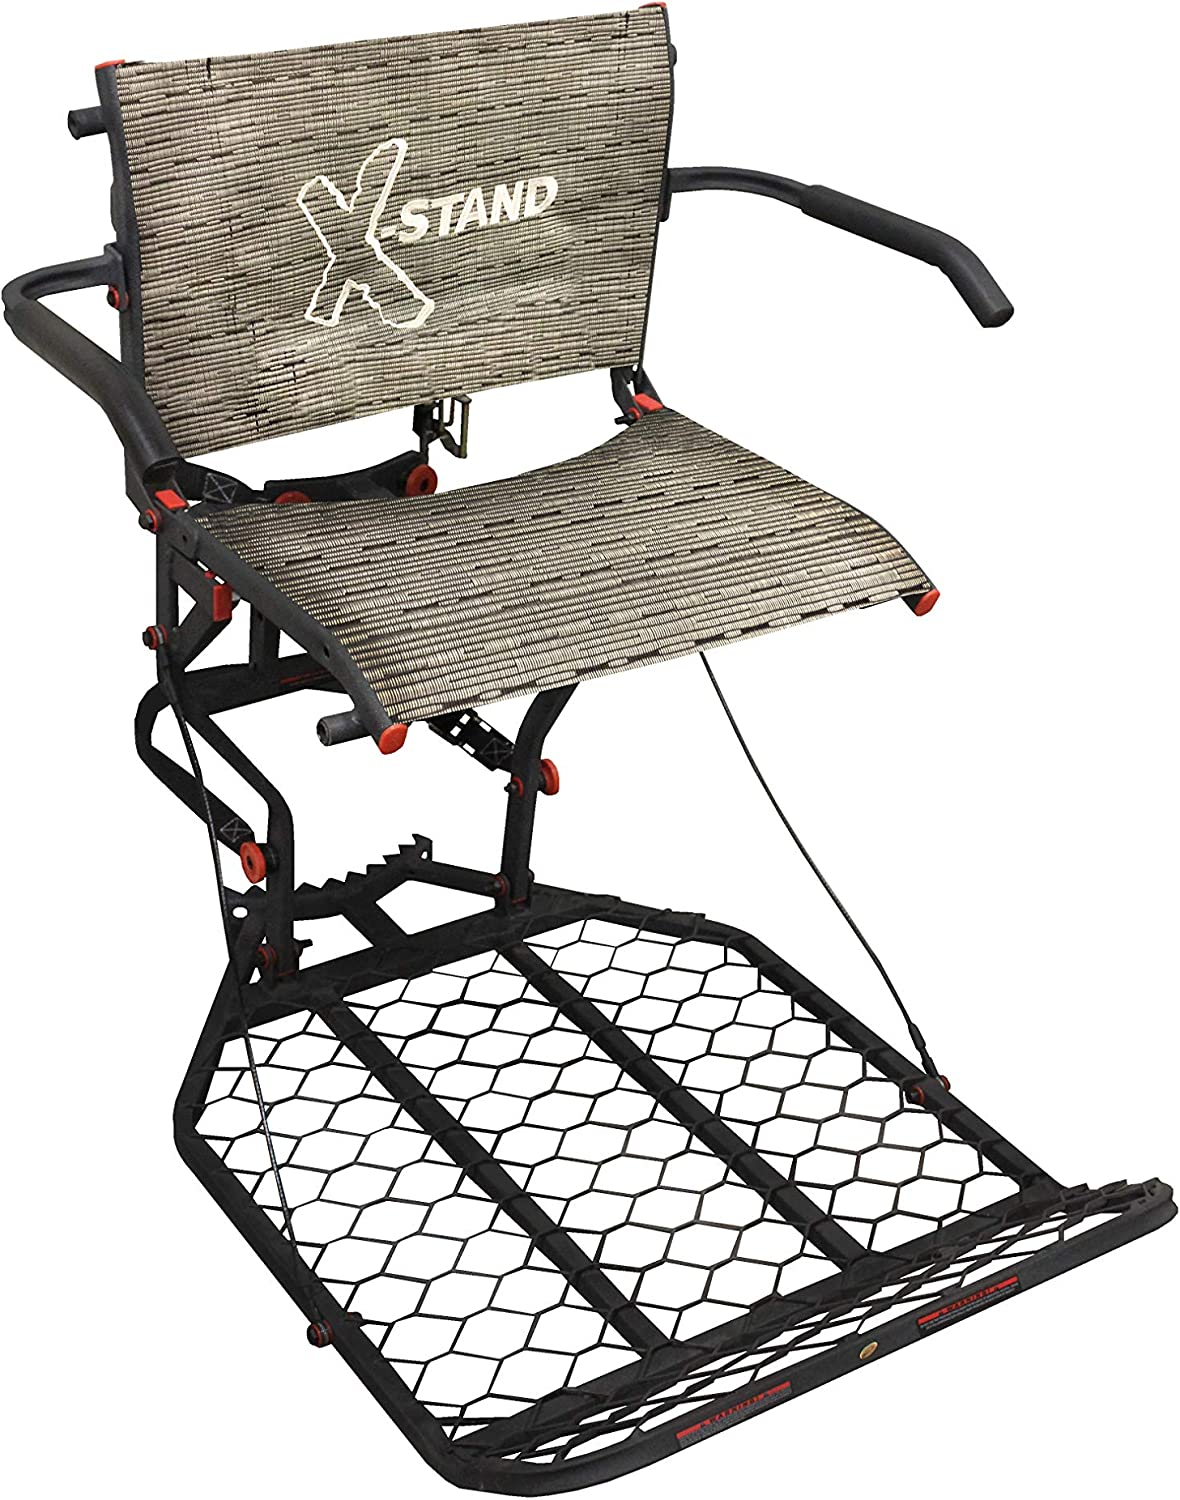 X-stand Patron Hang On Bowhunter Tree Stand